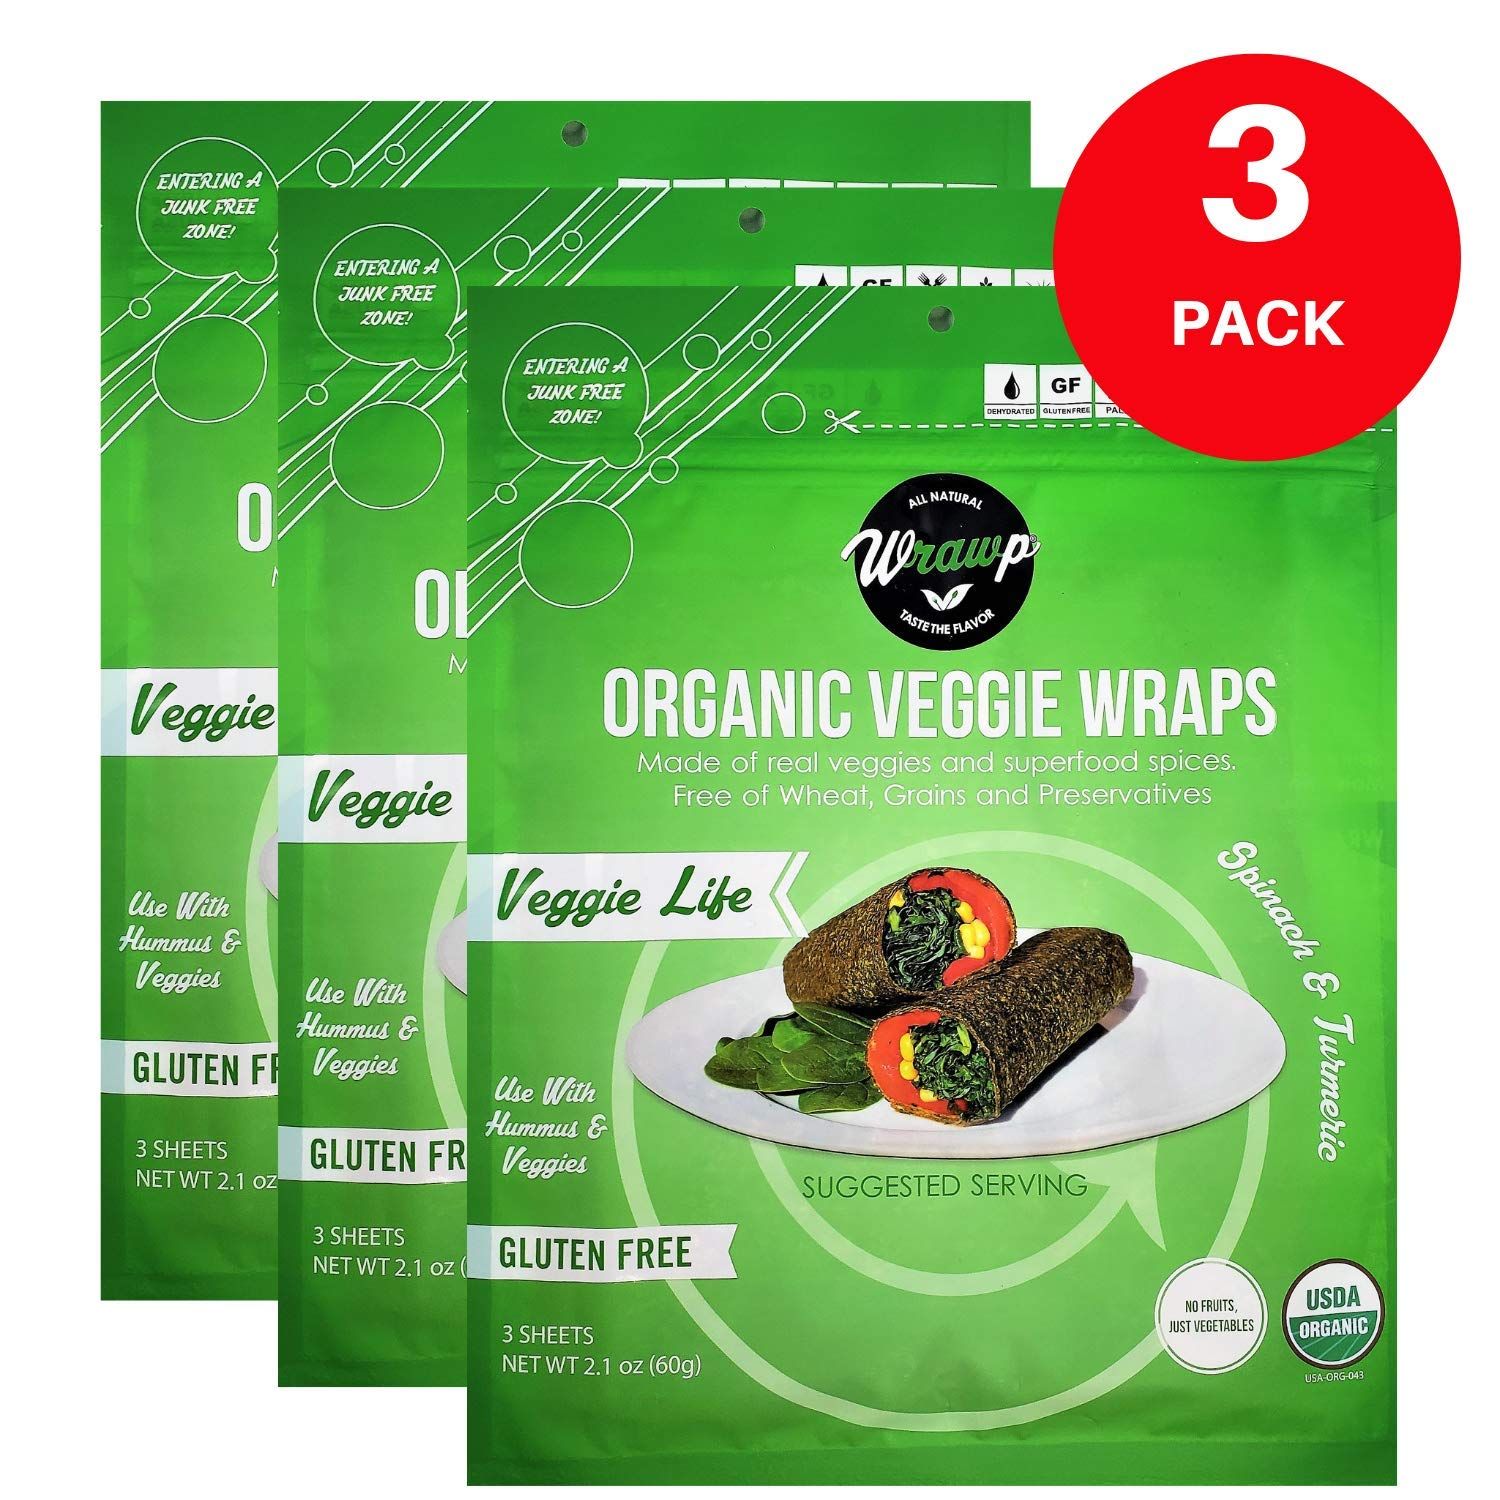 Organic Veggie Wraps -Mini Raw Vegan Veggie Life Flat Bread (3 pack) Perfect for Wraps, Sandwiches, Crackers, Side Bread or a Simple Snack